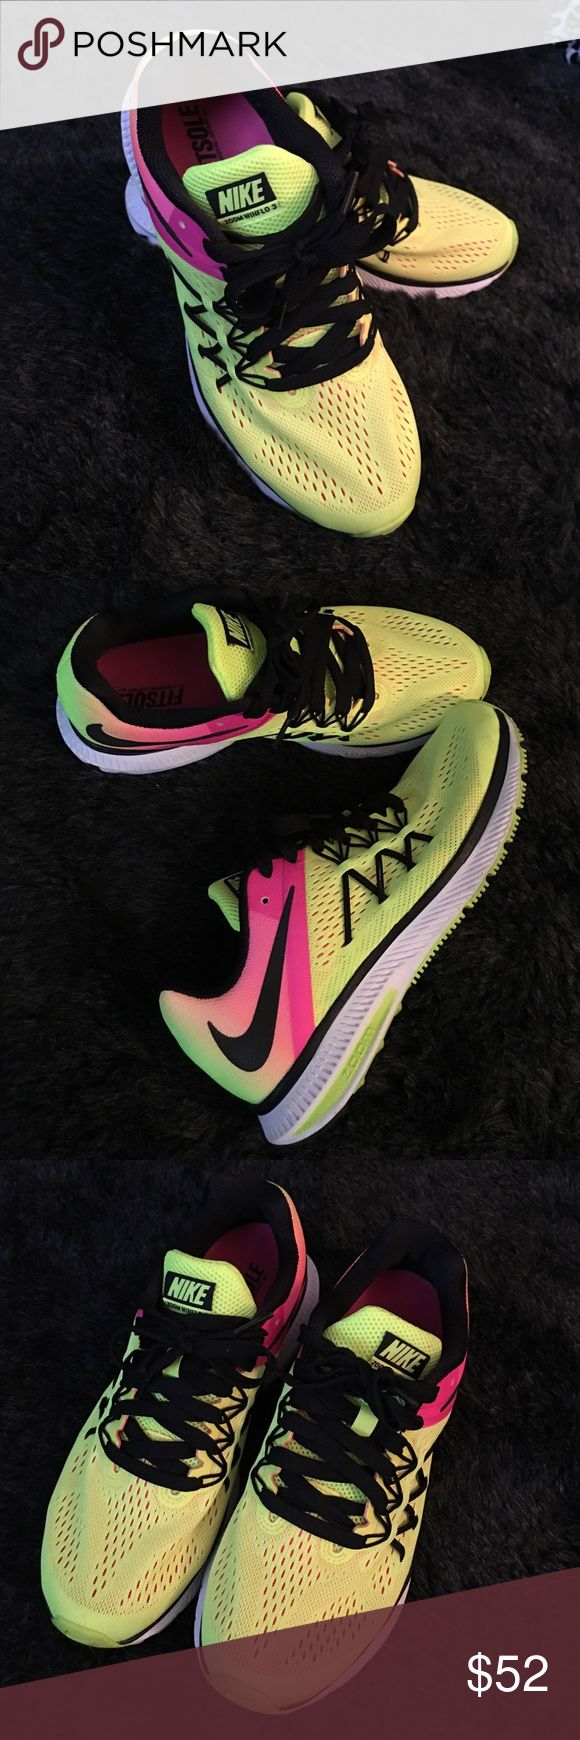 Nike Zoom Zoom Winflo 3 Brand new condition.  Only wore them once. Nike Shoes Sneakers